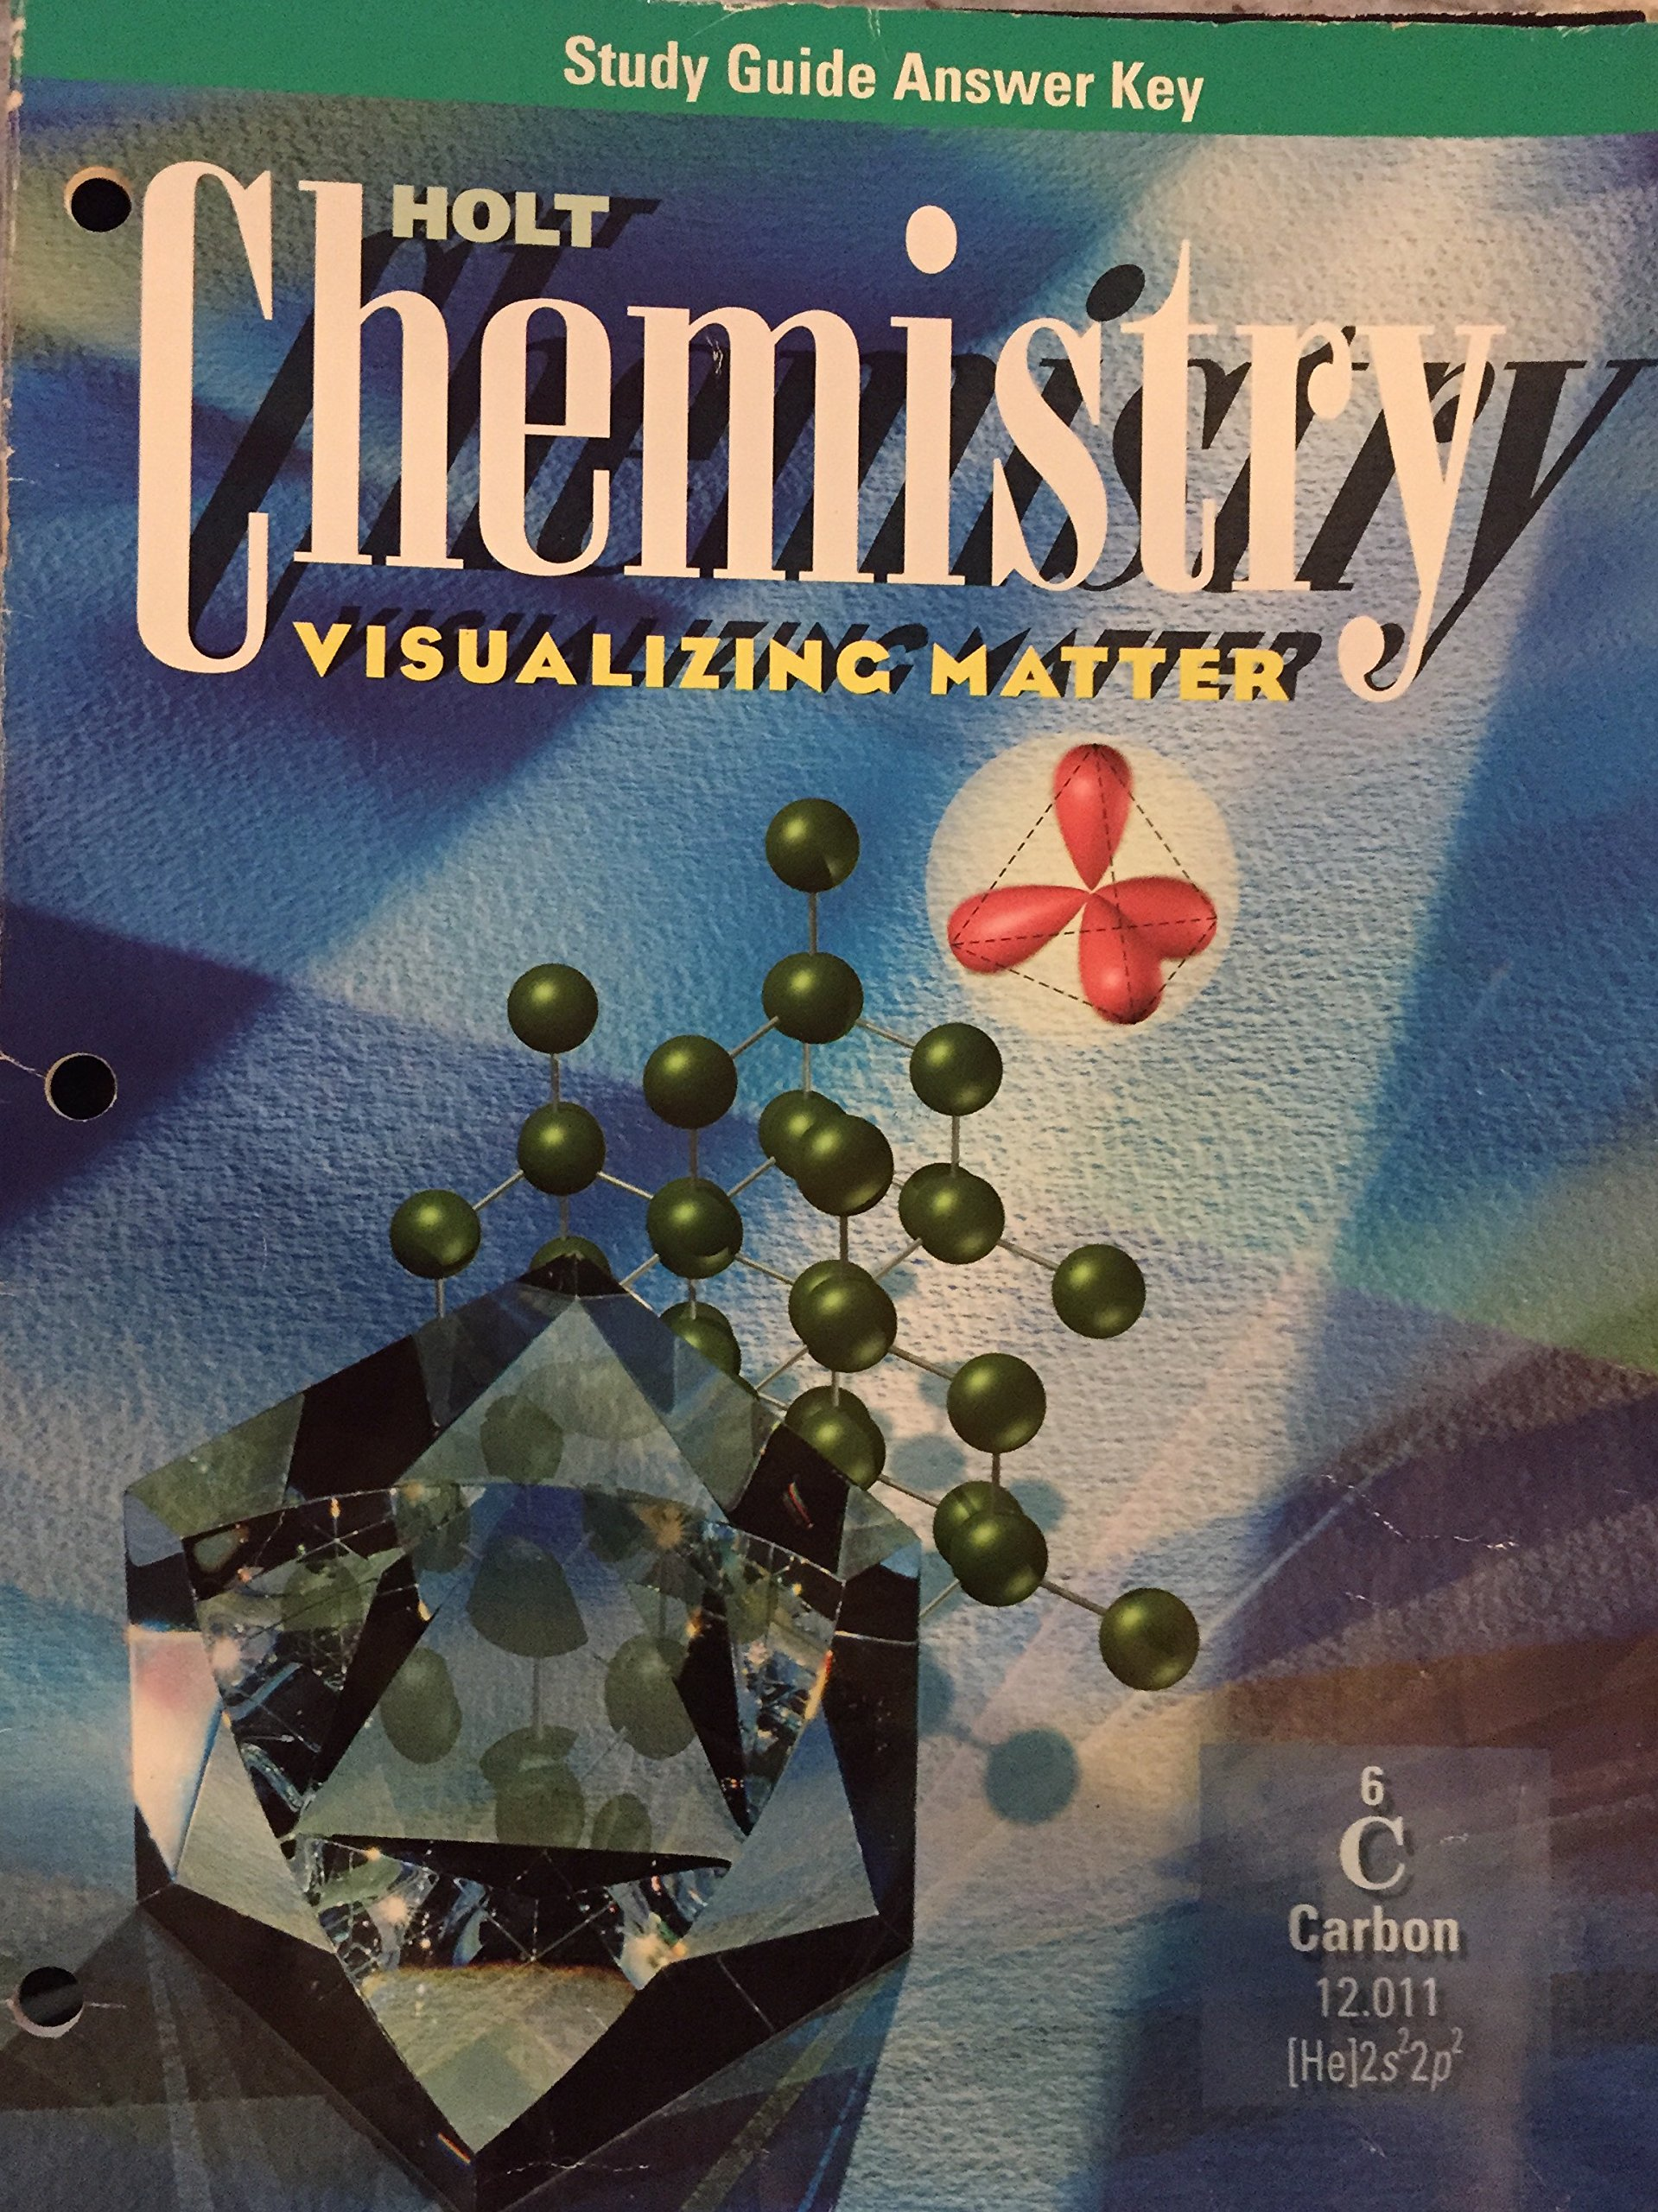 Holt chemistry visualizing matter study guide answer key holt chemistry visualizing matter study guide answer key rinehart and winston holt 9780030153235 amazon books fandeluxe Choice Image